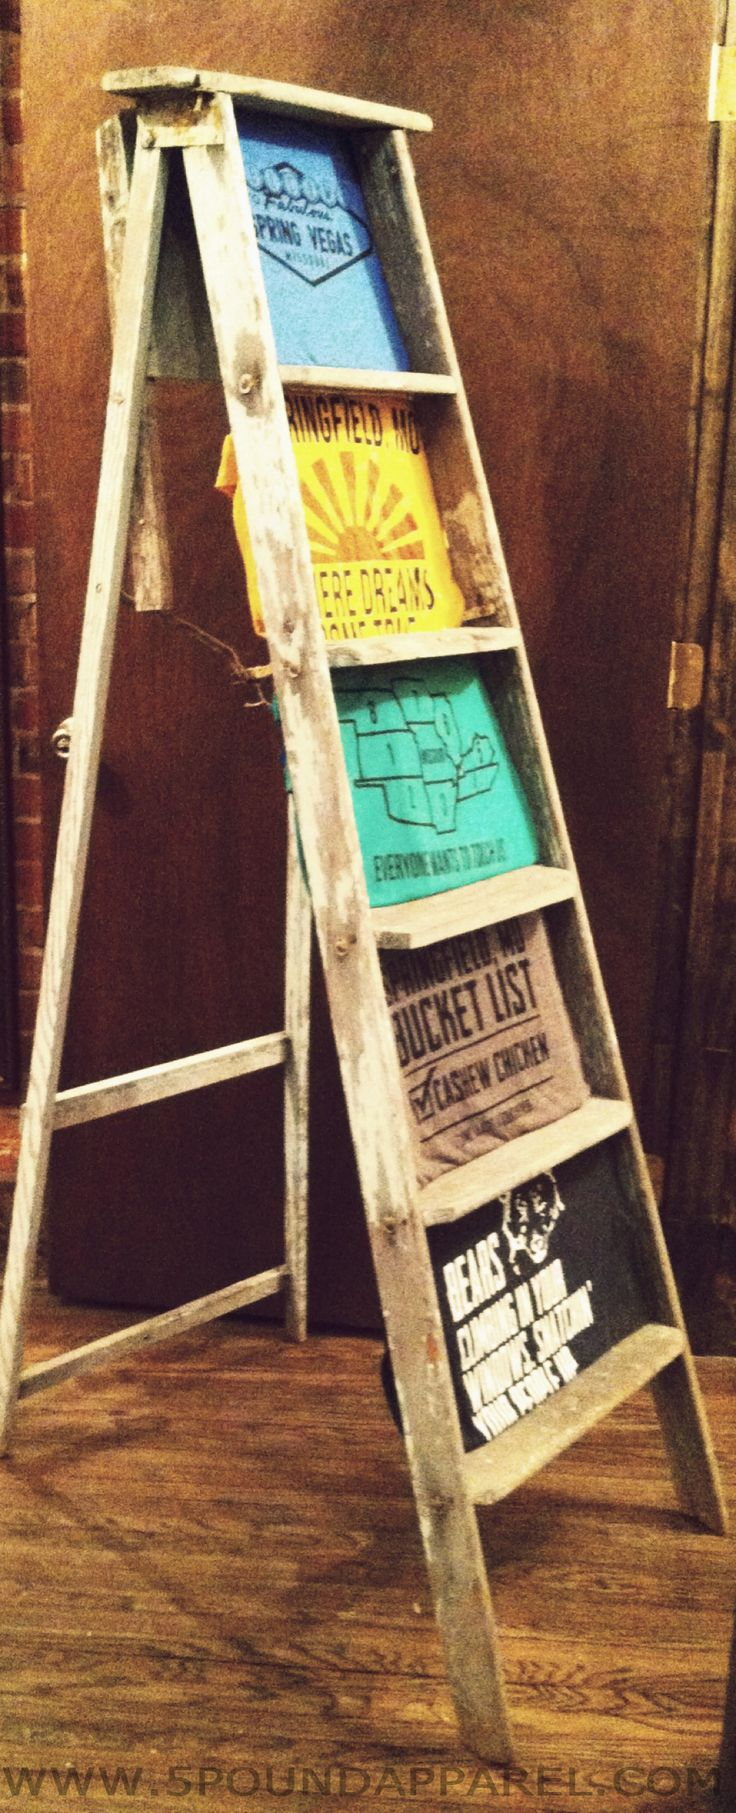 shirts in a ladder to display.